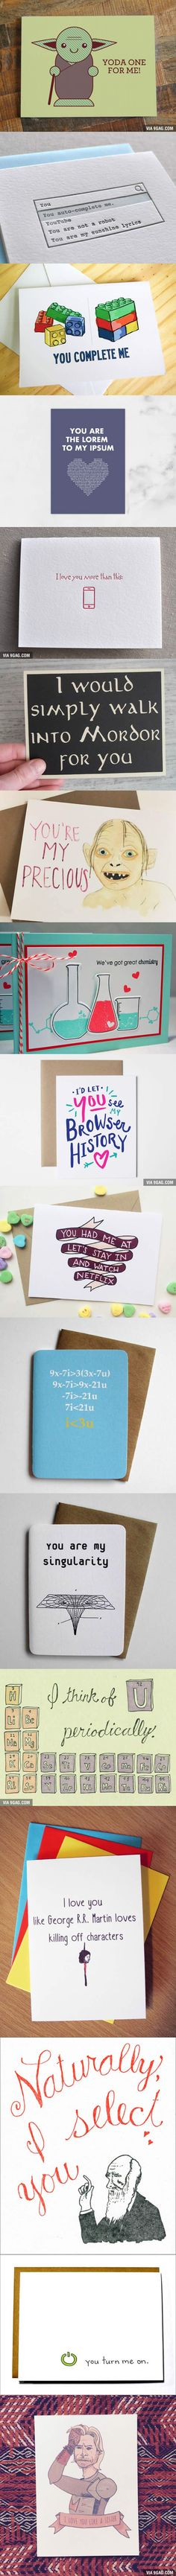 17 Nerdy Valentine's Day Cards